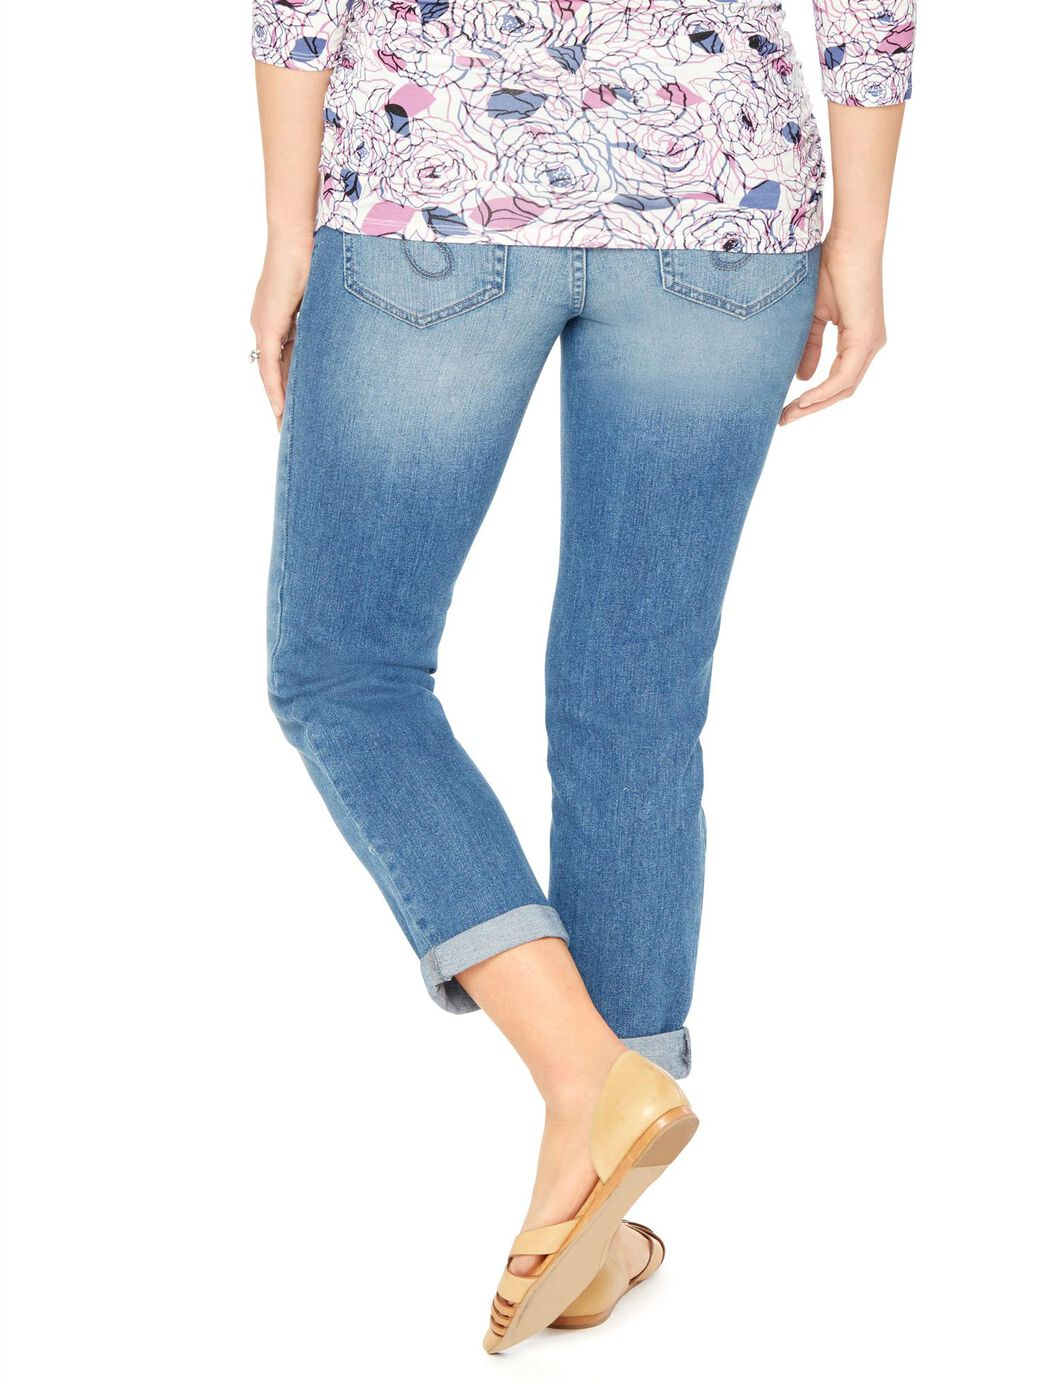 Indigo Blue Maternity Rinse Wash Skinny Jeans Online Shop I hated them. Still, on this short acquaintance, she didn't know that she could bring herself to trust any man who carried one of those horrific black satchels.